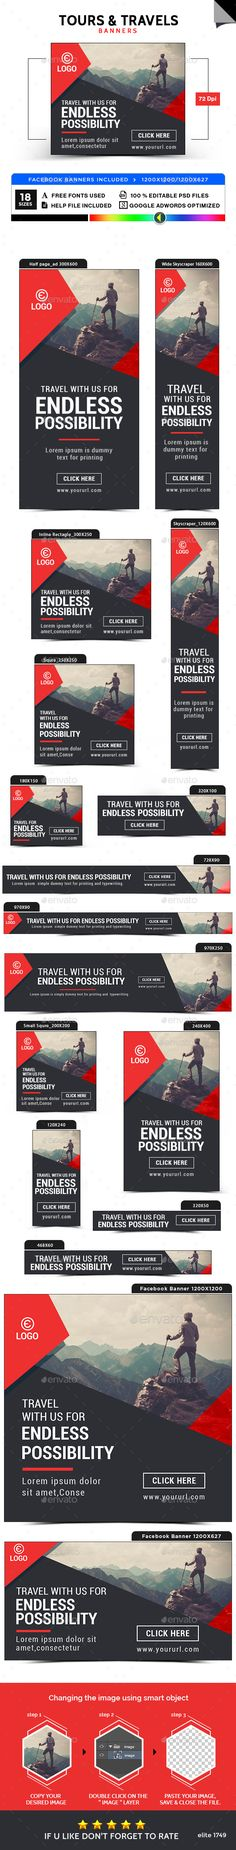 Tours & Travels Banners Template PSD. Download here: https://graphicriver.net/item/tours-travels-banners/17562967?ref=ksioks